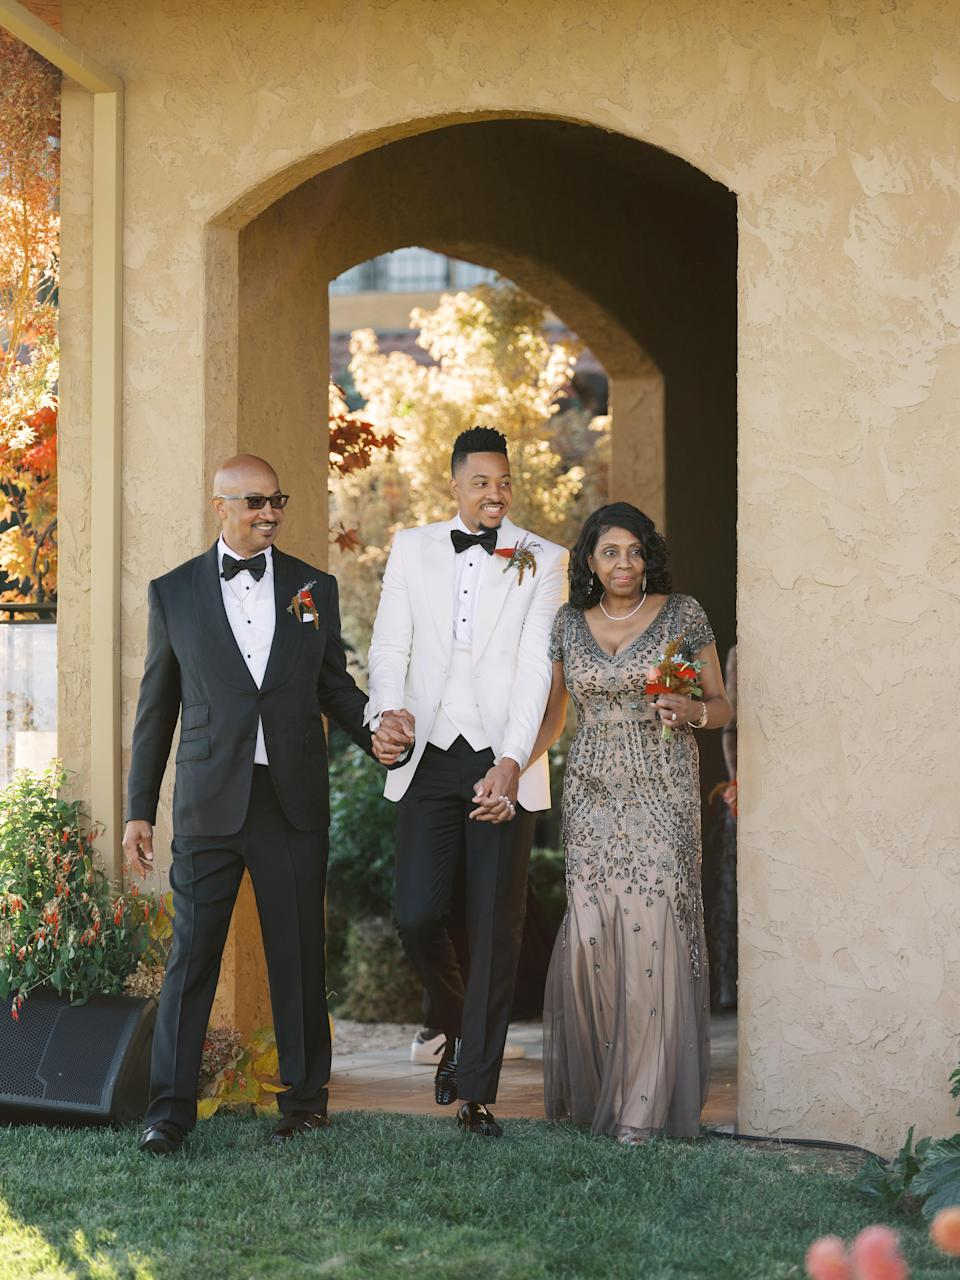 CJ walking down the aisle with his beautiful mother and father. His brother could not attend our wedding because he works abroad, so he made his father his best man.